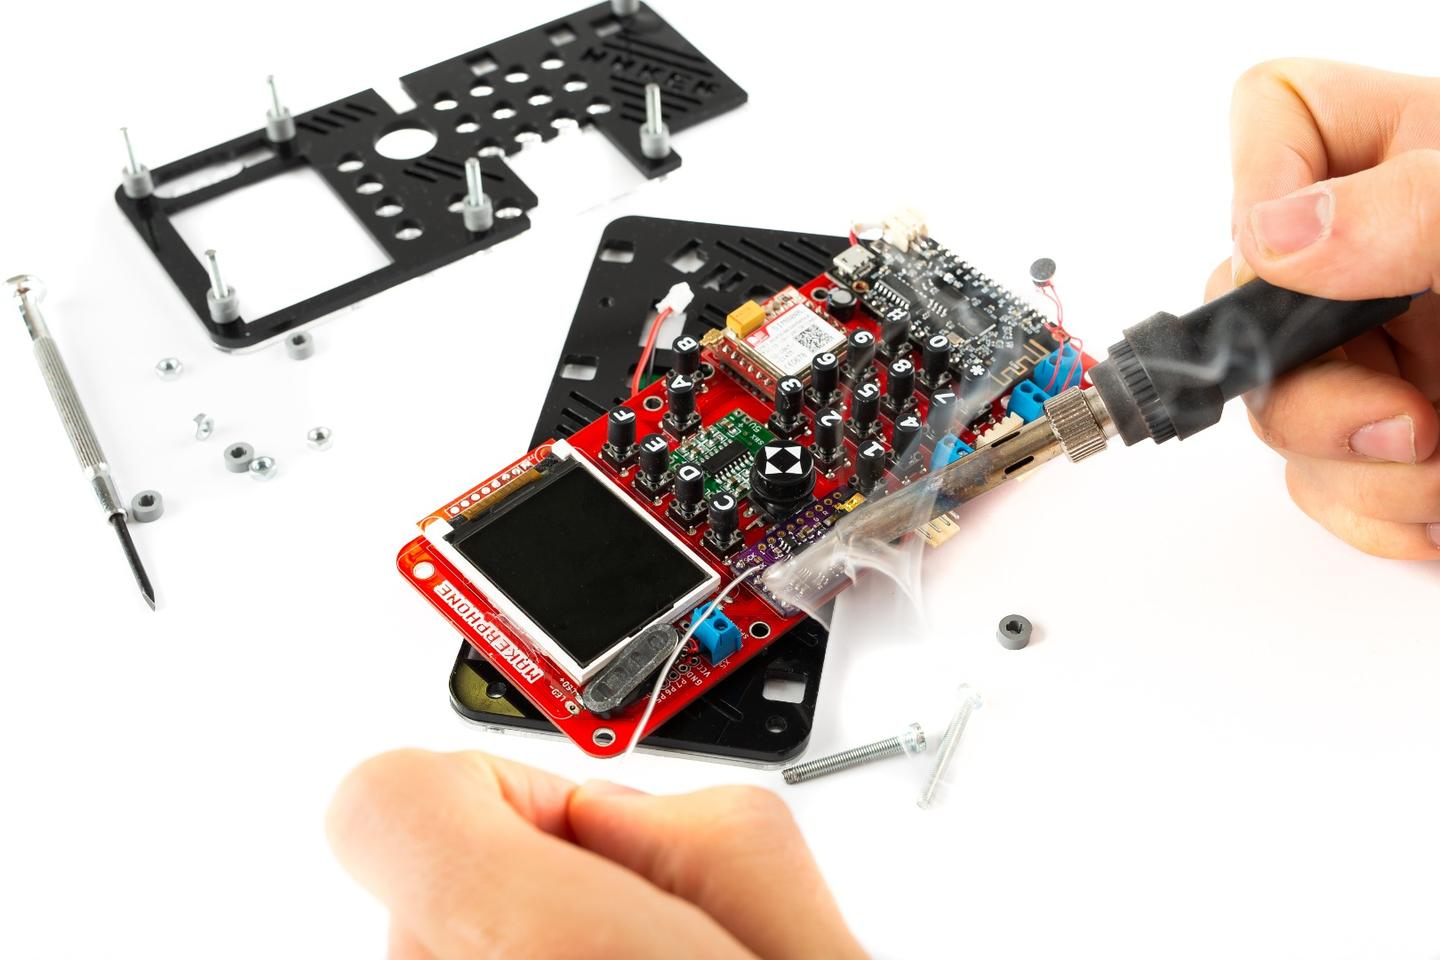 As its name suggests, the MakerPhone is an educational electronics kit that you build into a working mobile phone